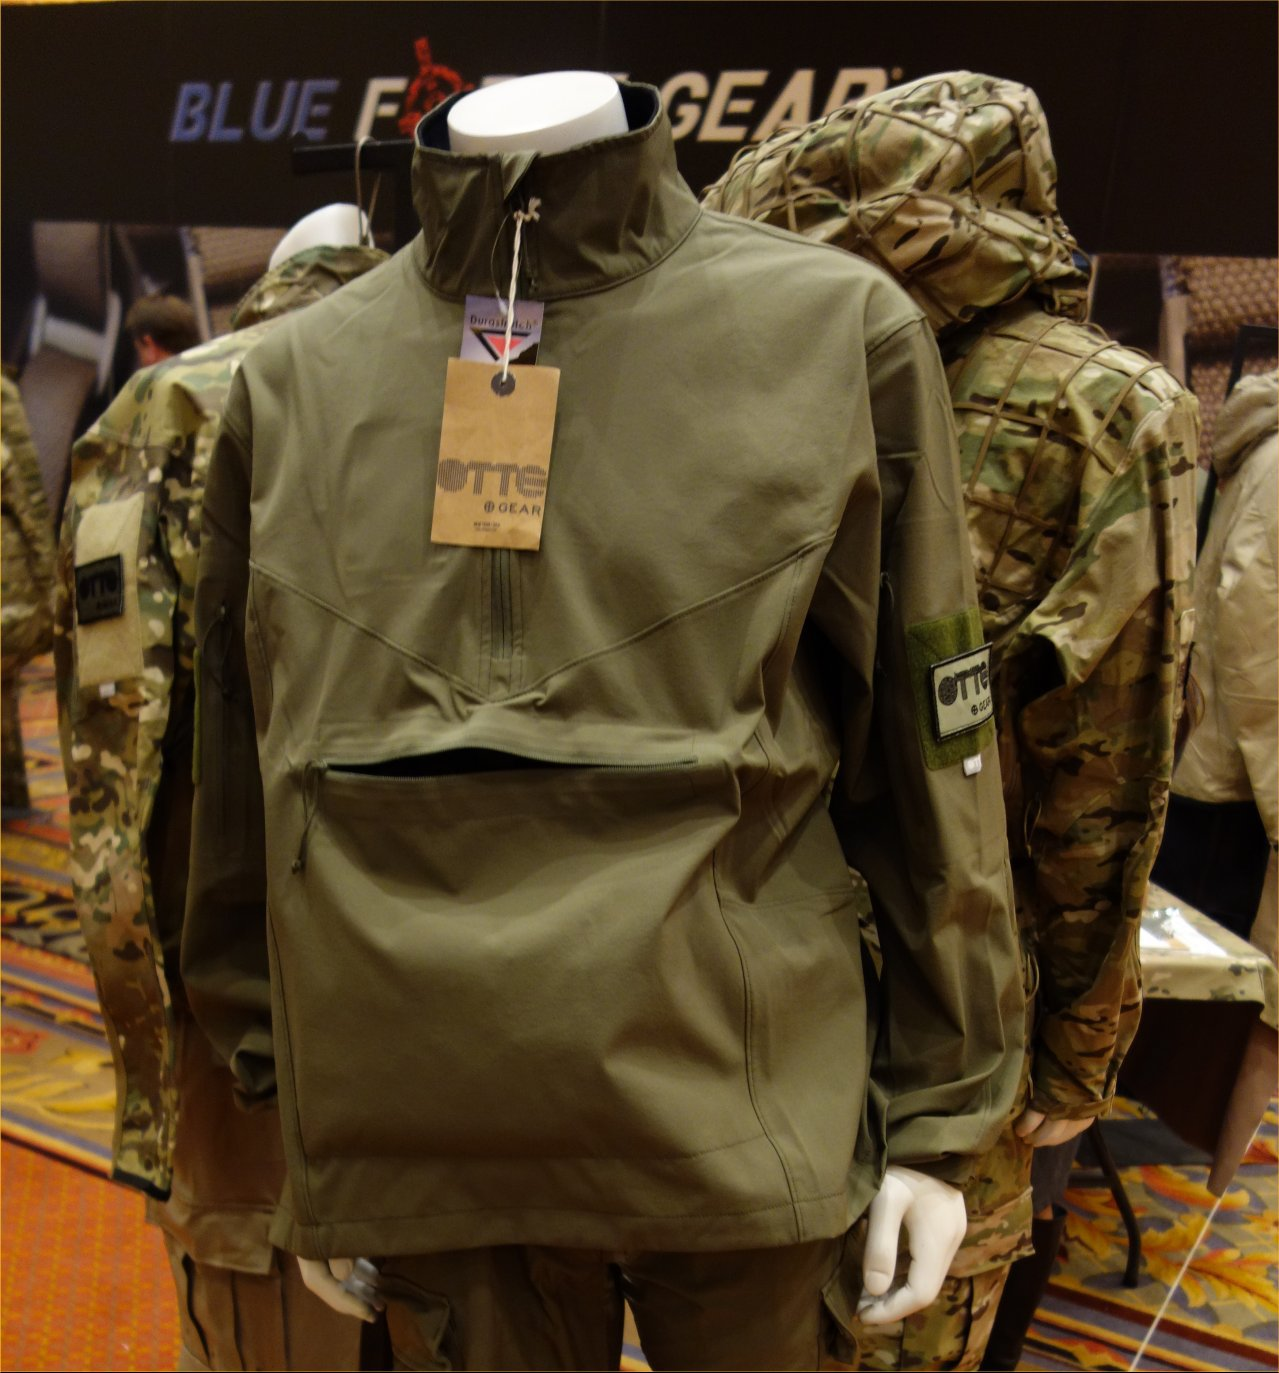 Otte Gear (OG) Sentinel Anorak Softshell: High-End Lightweight Pullover Combat/Tactical Jacket with Kangaroo Pouch for Lo-Pro/Lo-Vis Special Operations and Gunfighting with your Tactical Rifle/Carbine/SBR (Video!)